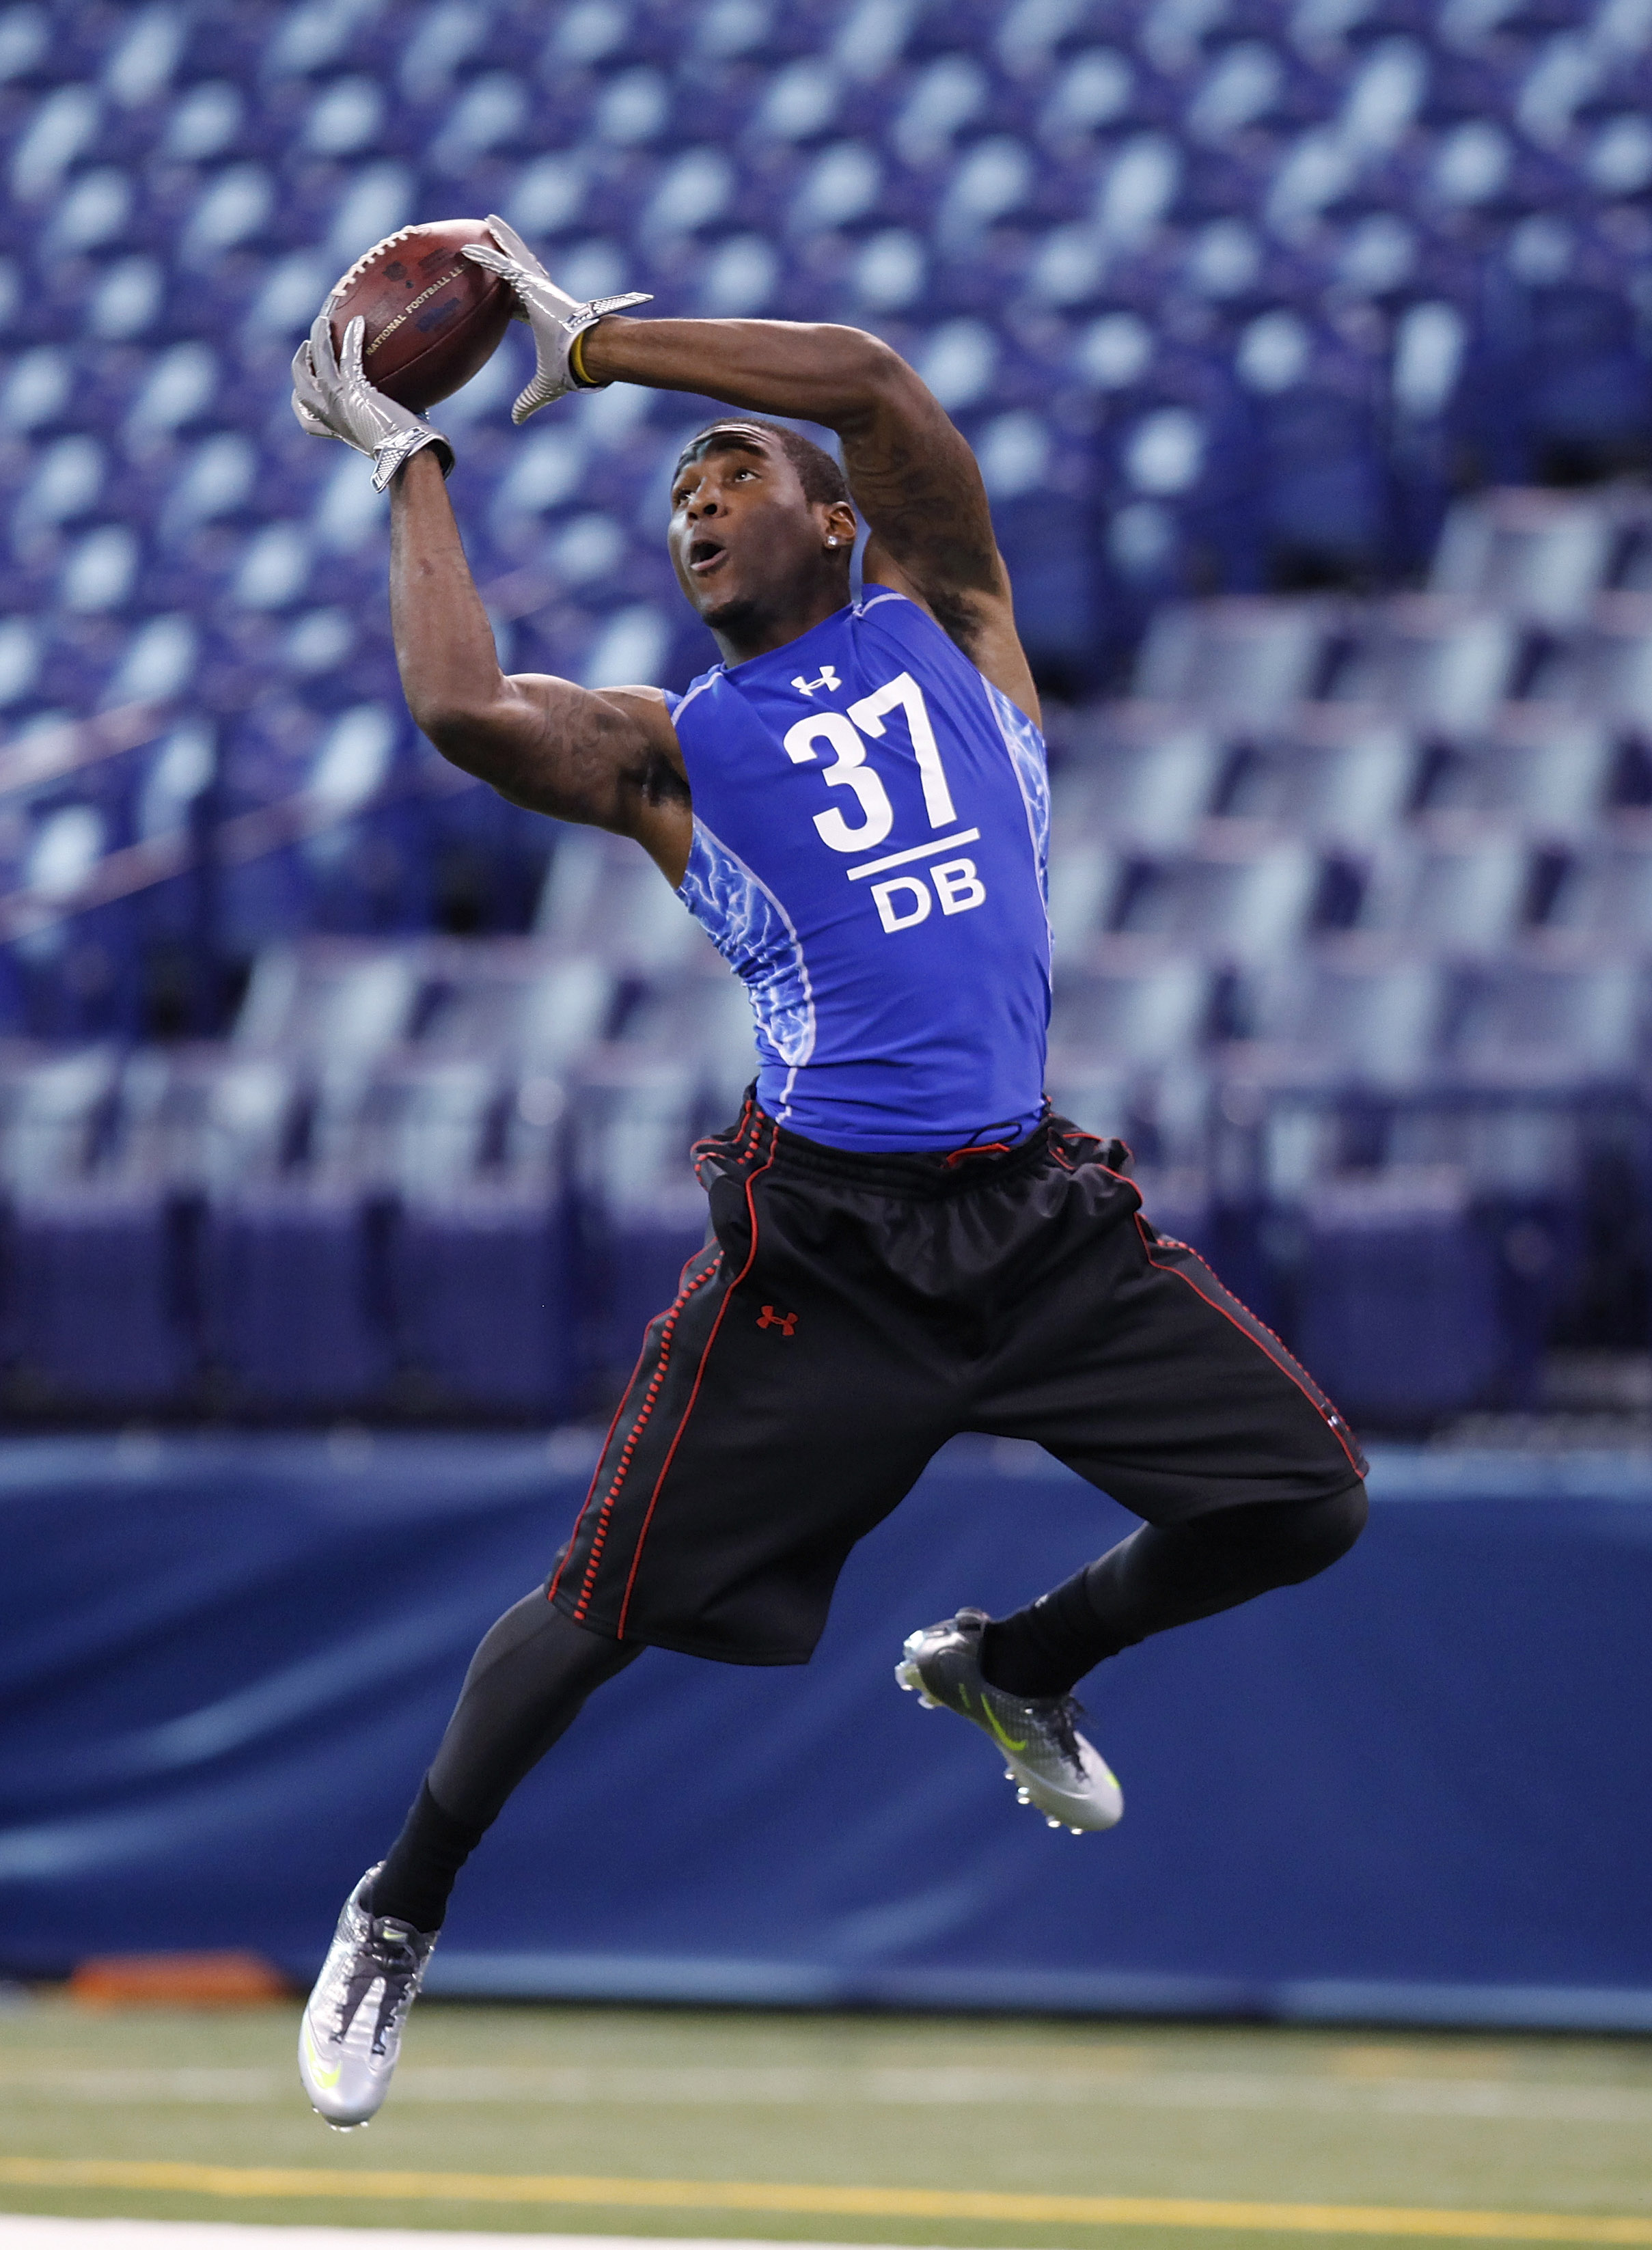 Peterson is probably the most talented player in this draft